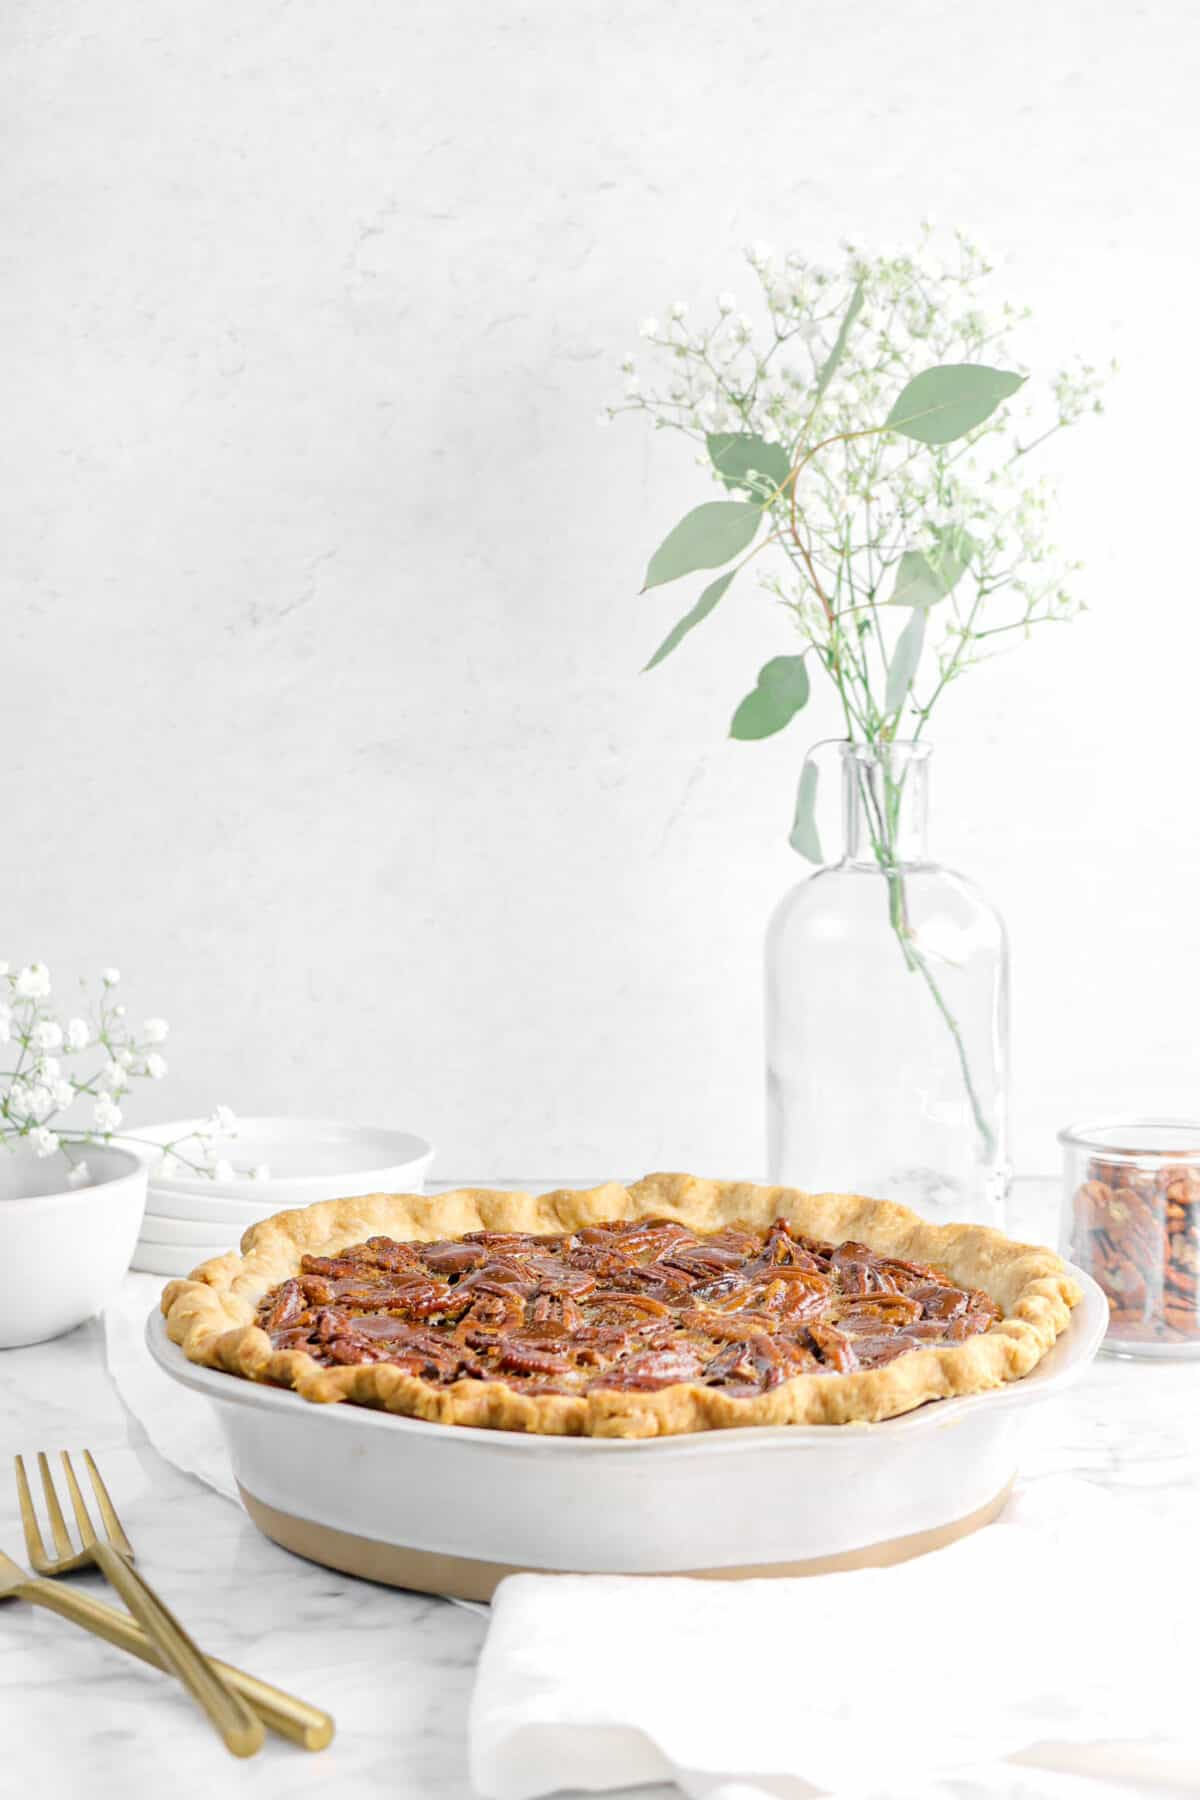 bourbon chocolate pecan pie with flowers, gold forks, plates, and glass jars